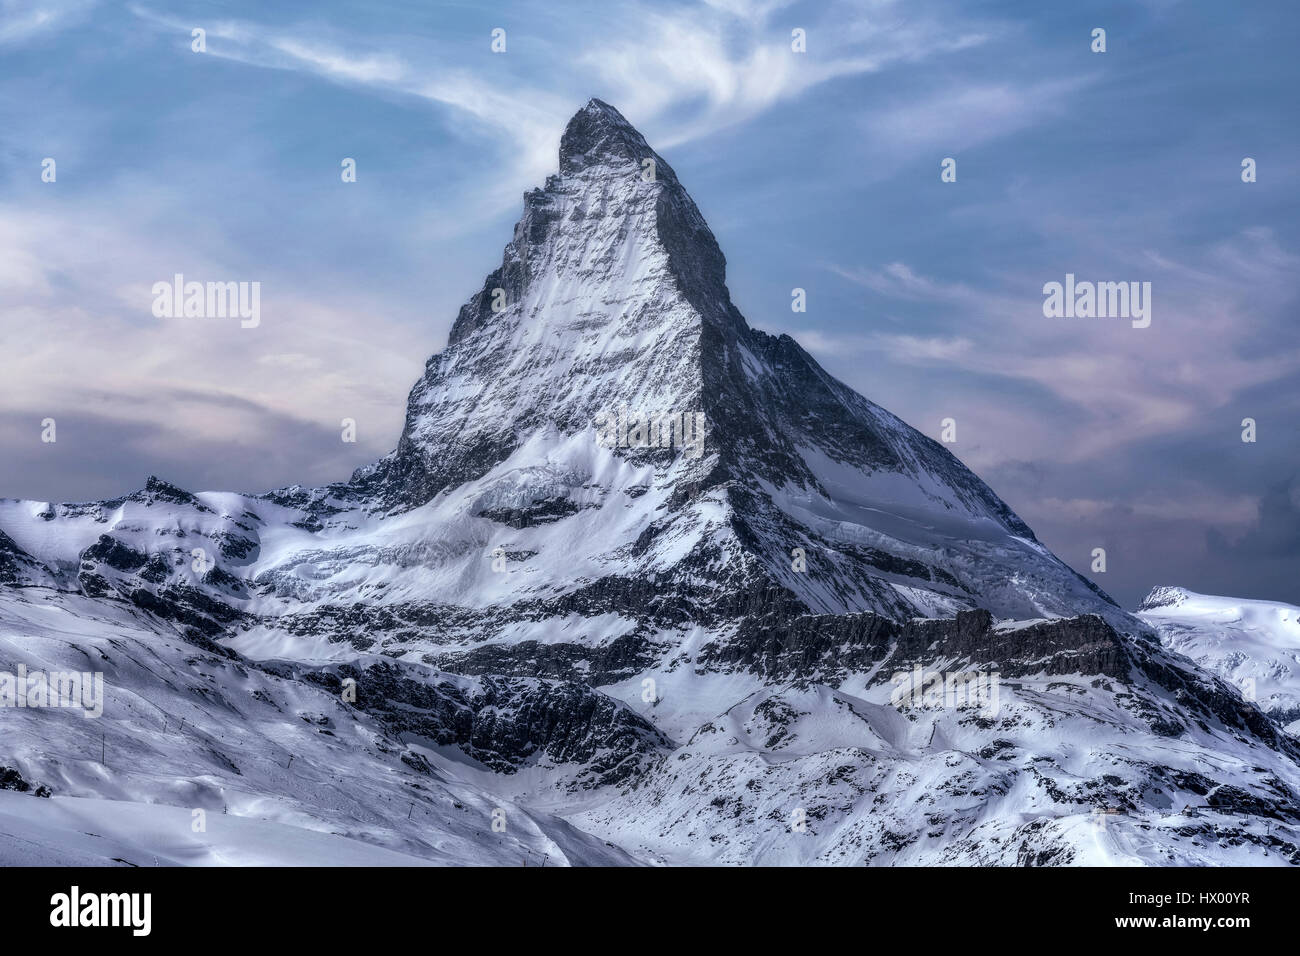 Matterhorn, Zermatt, Gornergrat, Valais, Switzerland, Europe - Stock Image